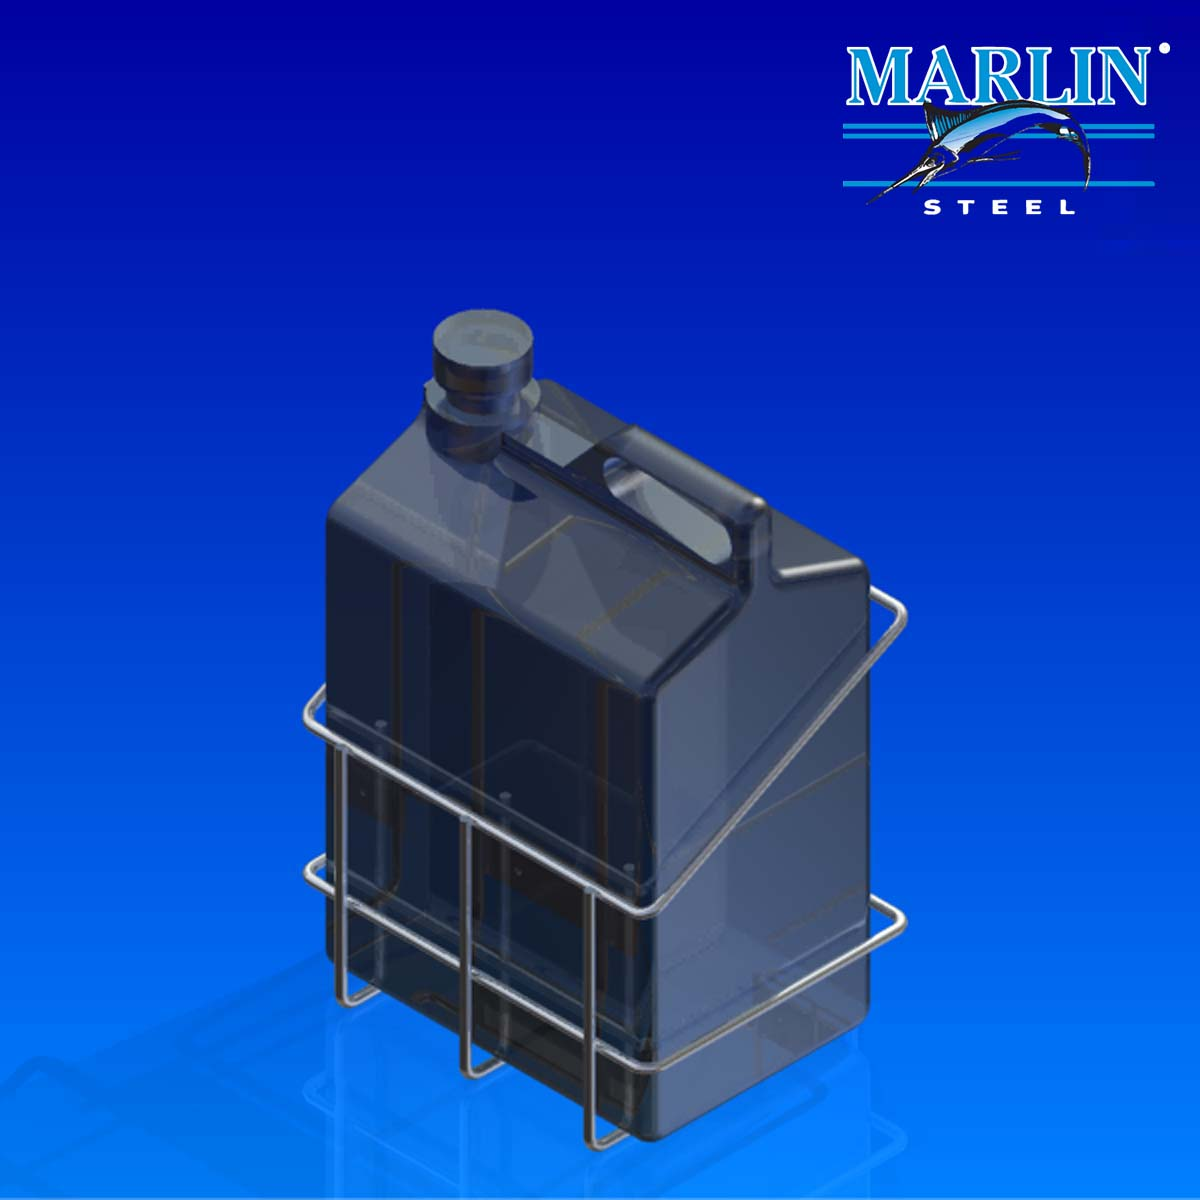 Marlin Steel Wire Basket 729001.jpg